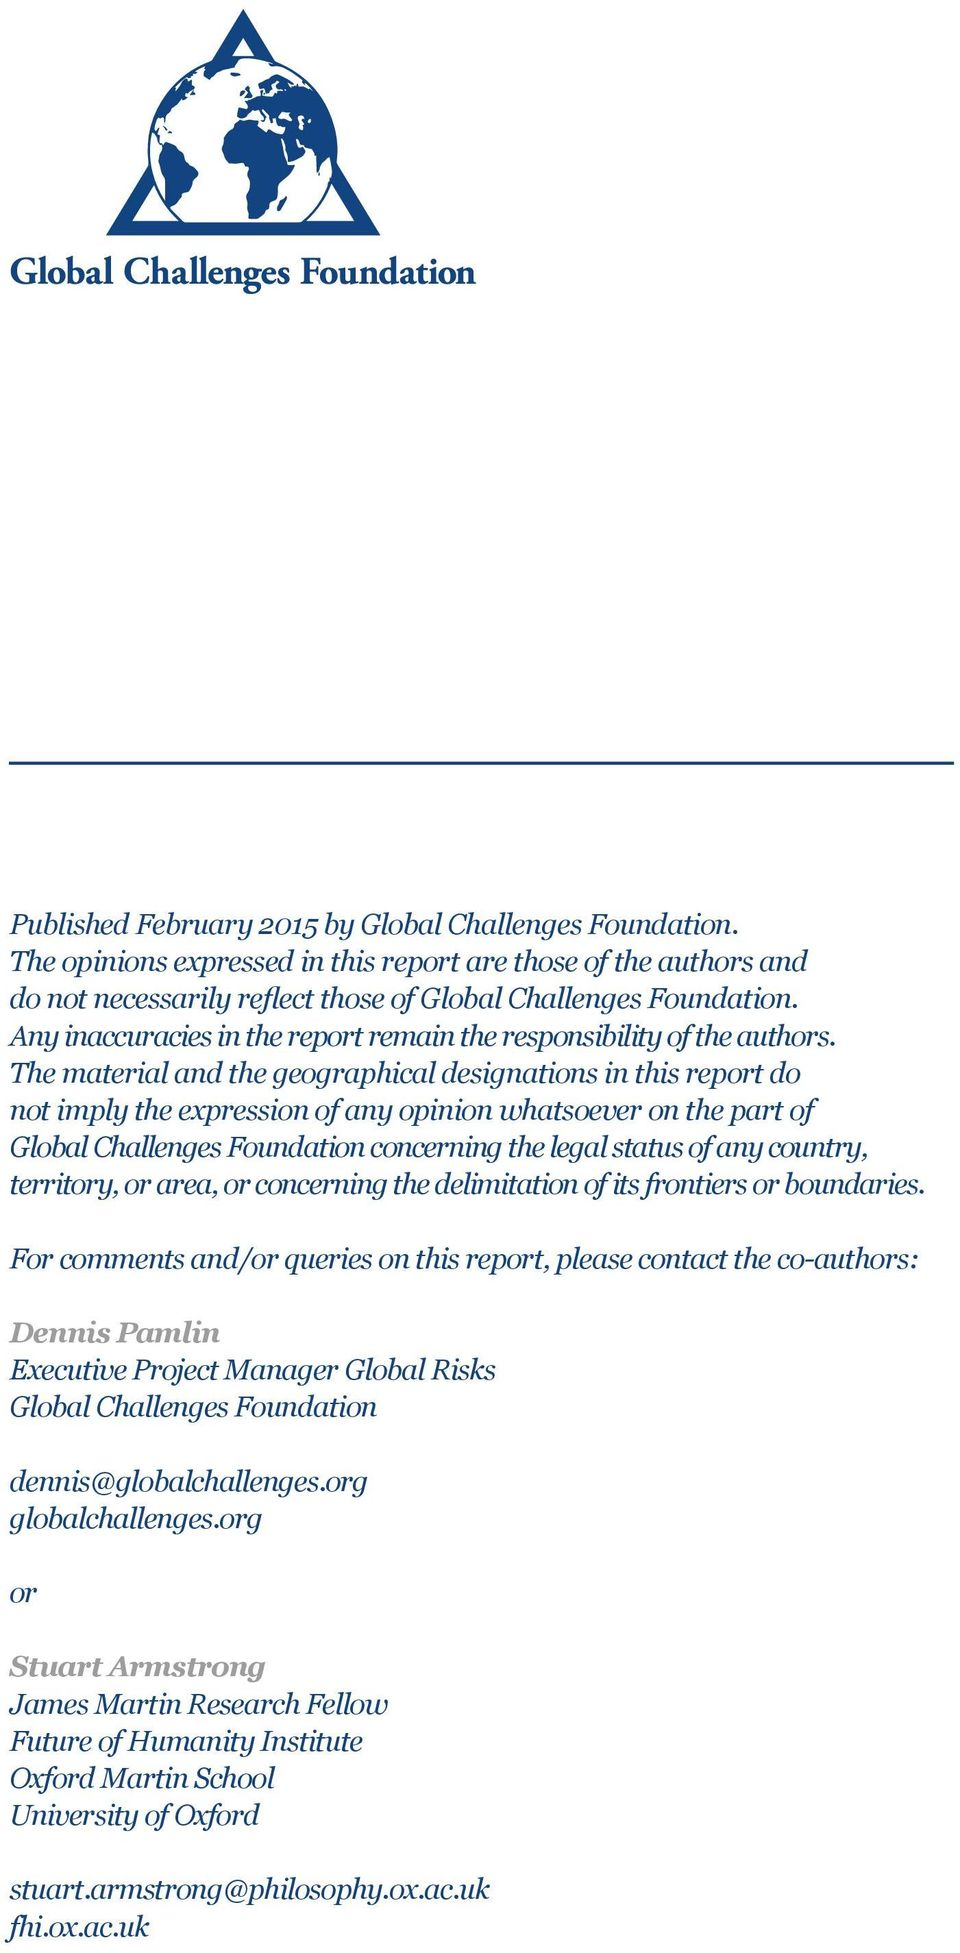 The material and the geographical designations in this report do not imply the expression of any opinion whatsoever on the part of Global Challenges Foundation concerning the legal status of any